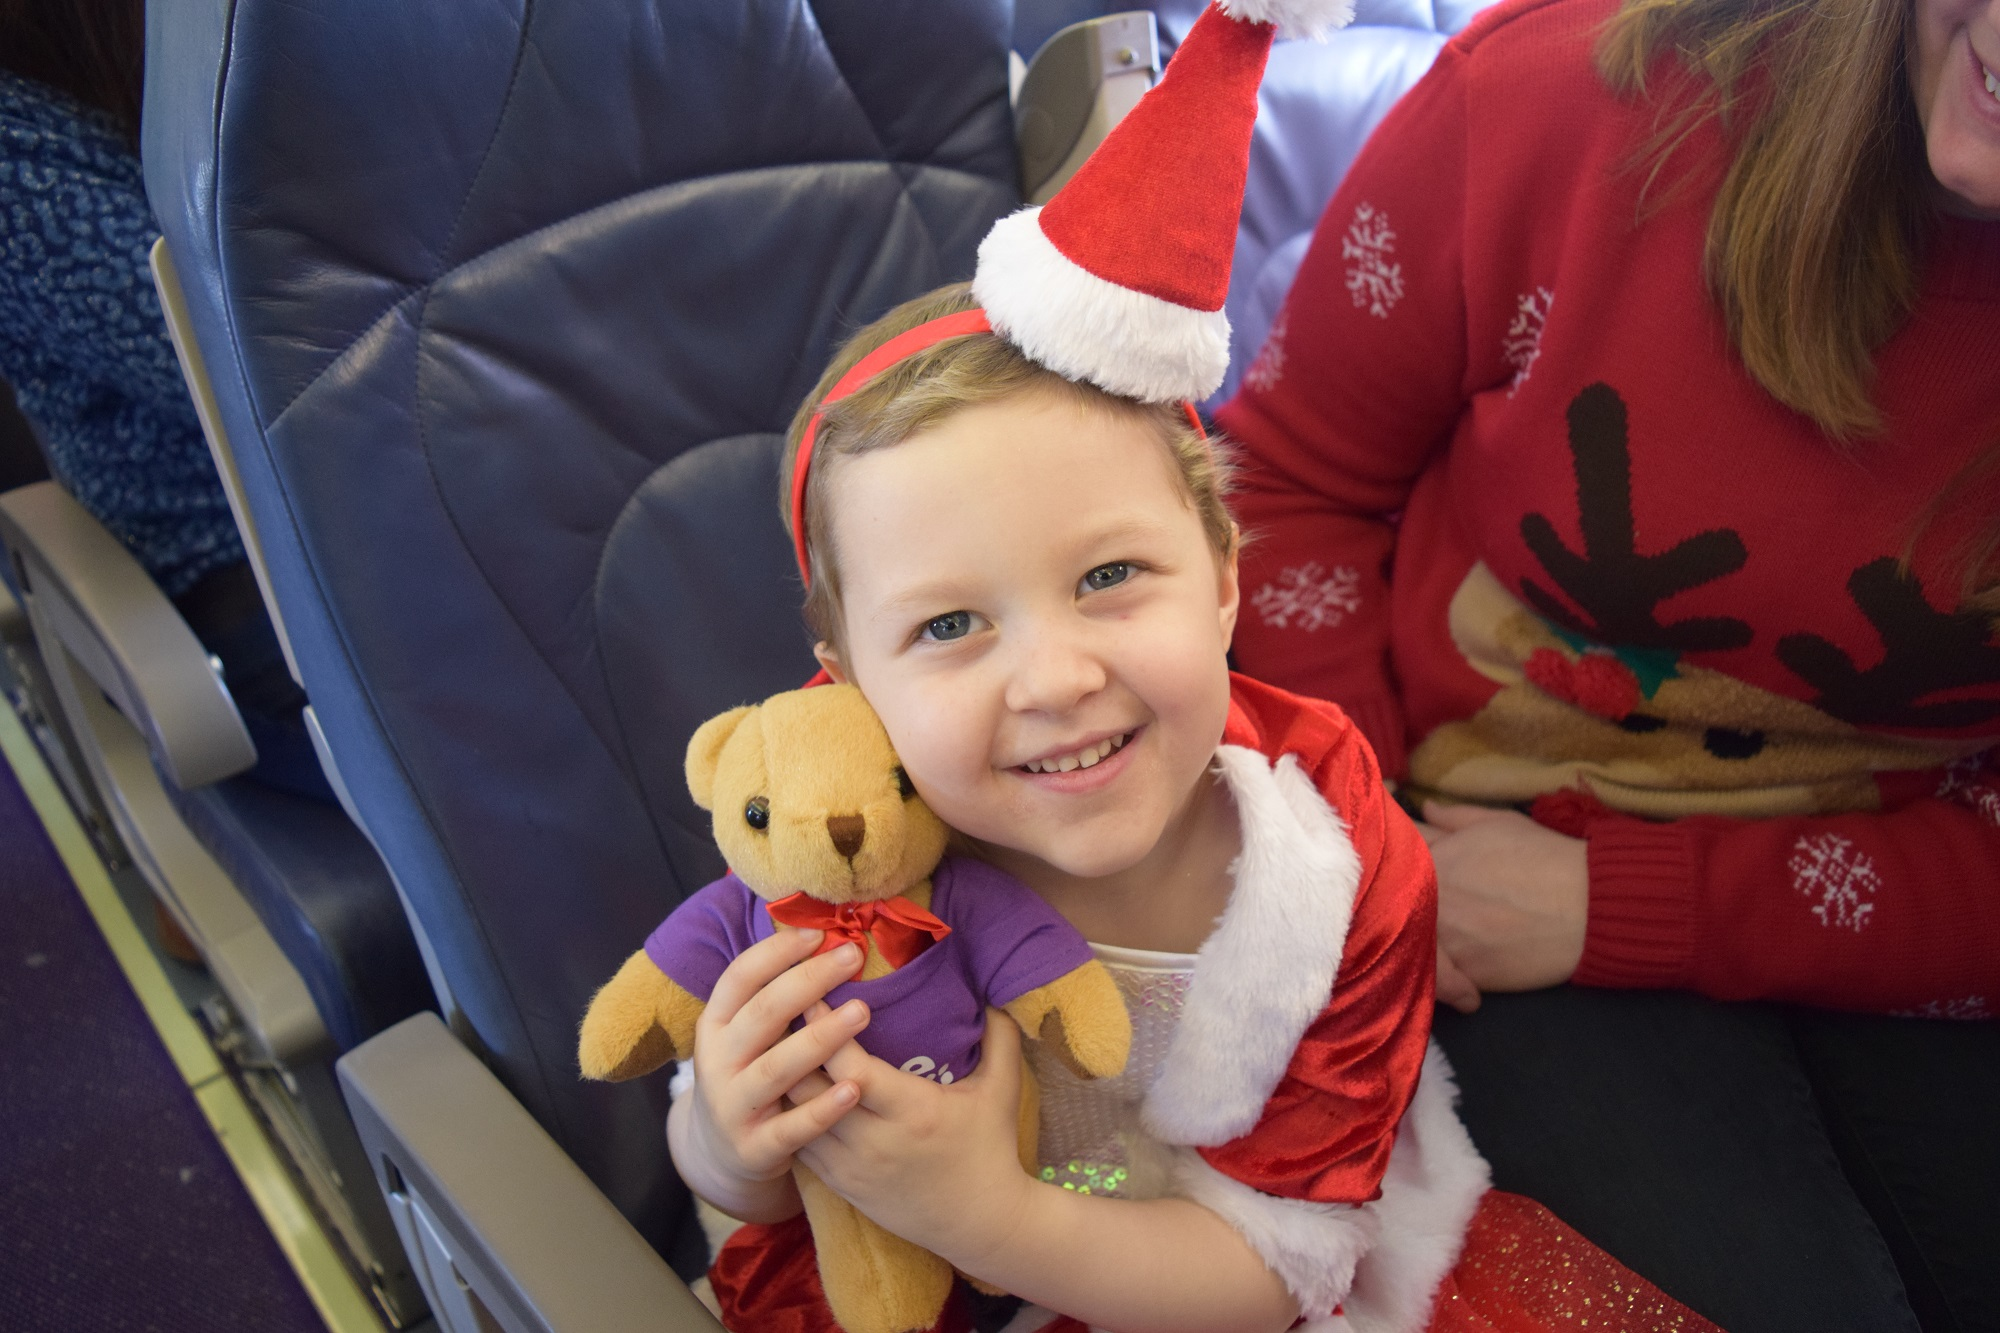 Patient from the Southampton Hospital with her teddy bear from Flybe's Santa